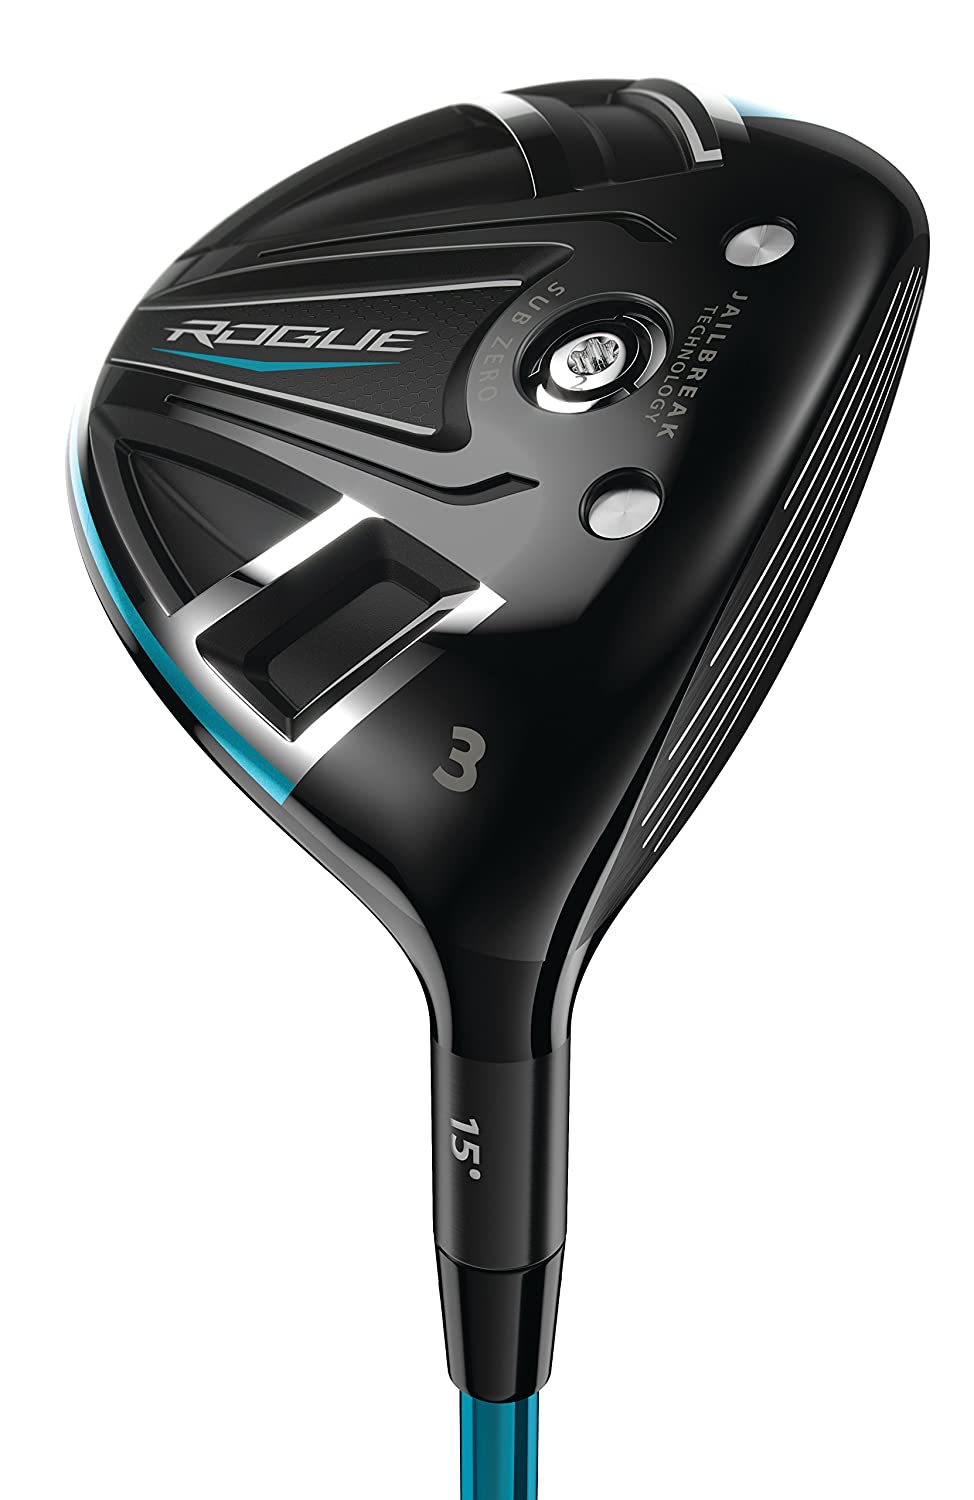 Callaway Golf Men's Rogue Fairway Wood Black Friday 2020 Deal